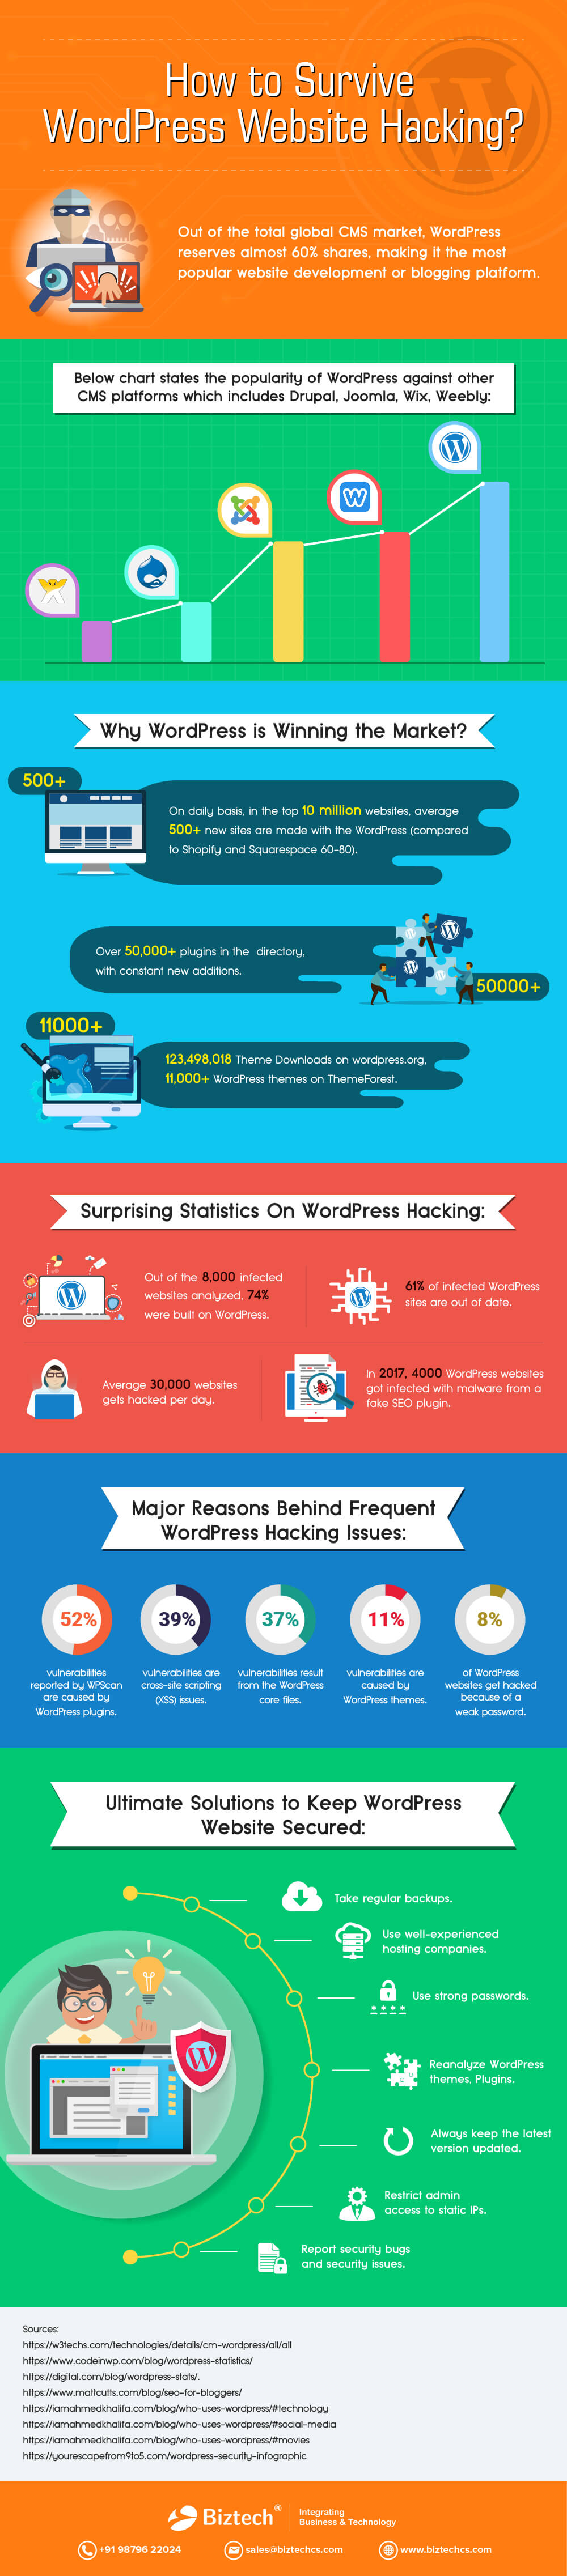 How-to-Survive-WordPress-Website-Hacking-infographic-plaza